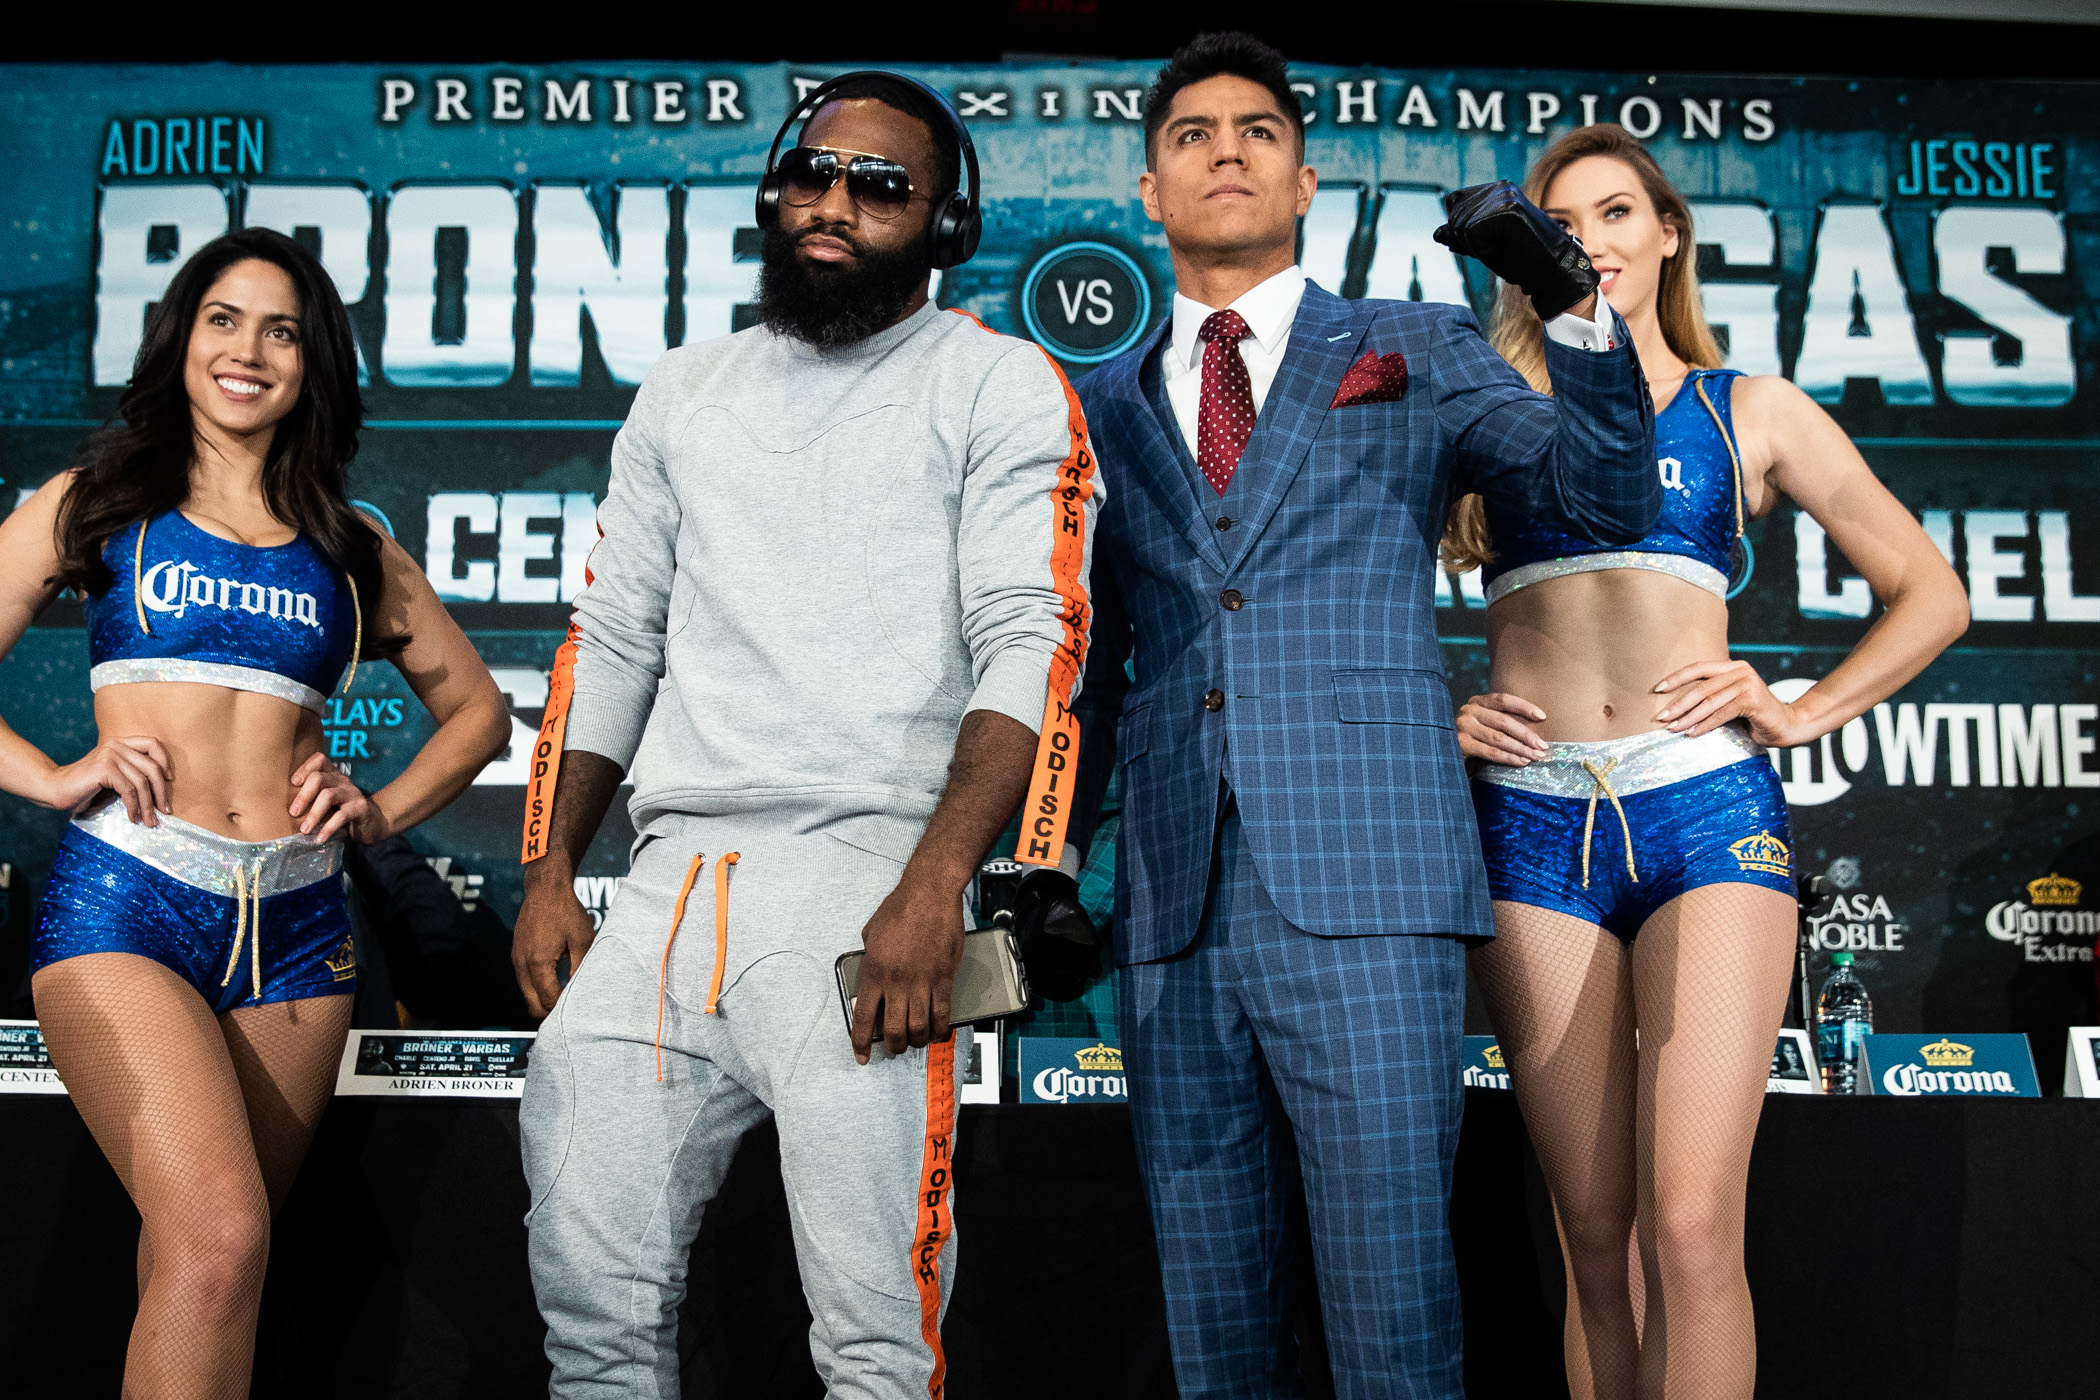 Adrien Broner, Jessie Vargas Battle To a Majority Draw